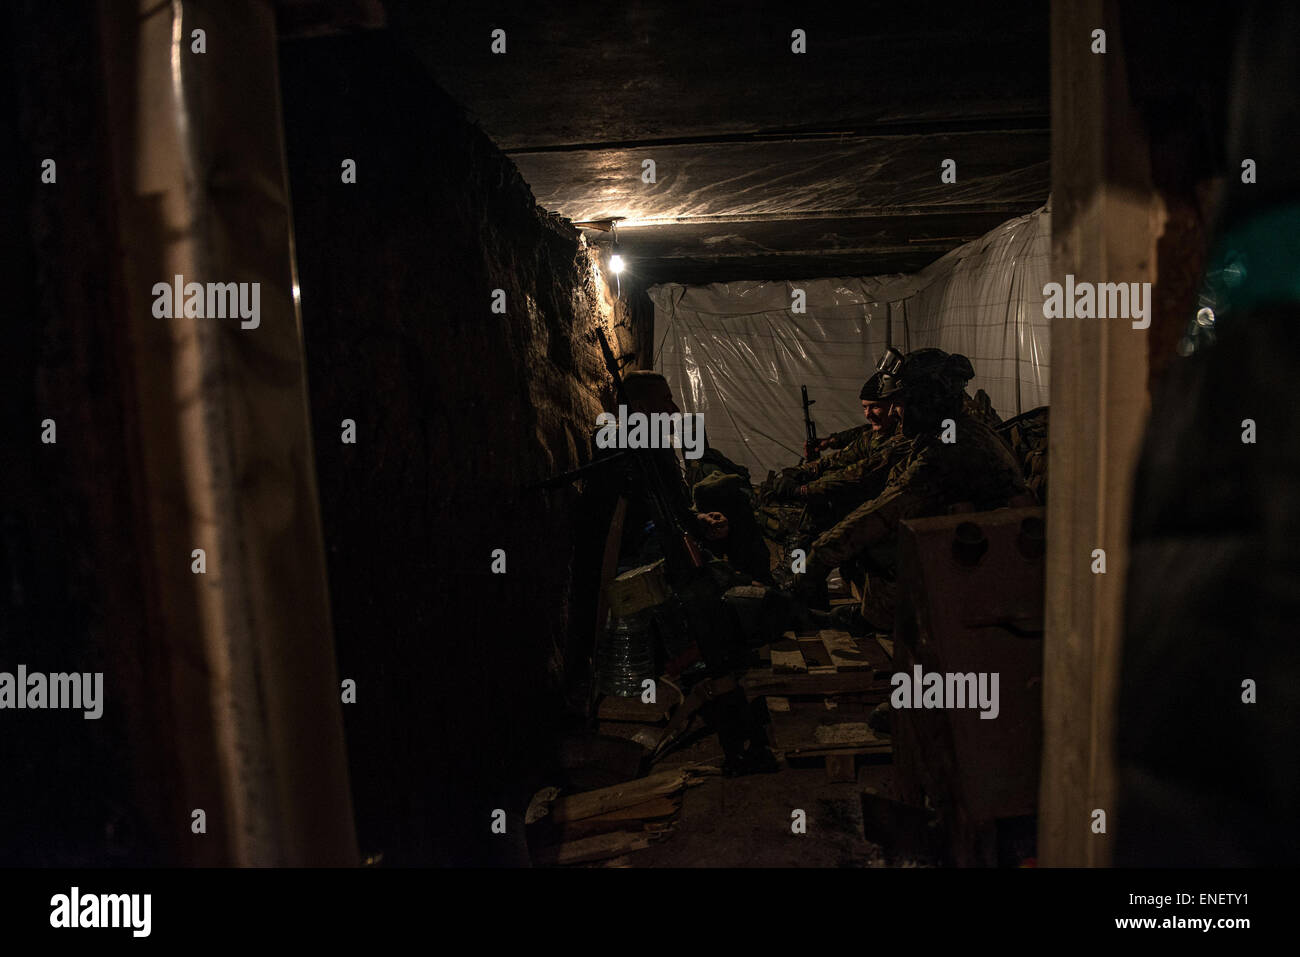 March 15 2015 - Mariupol, Ukraine: Volunteer fighters take cover in the trenches outside Shyrokine. Despite a ceasfire - Stock Image